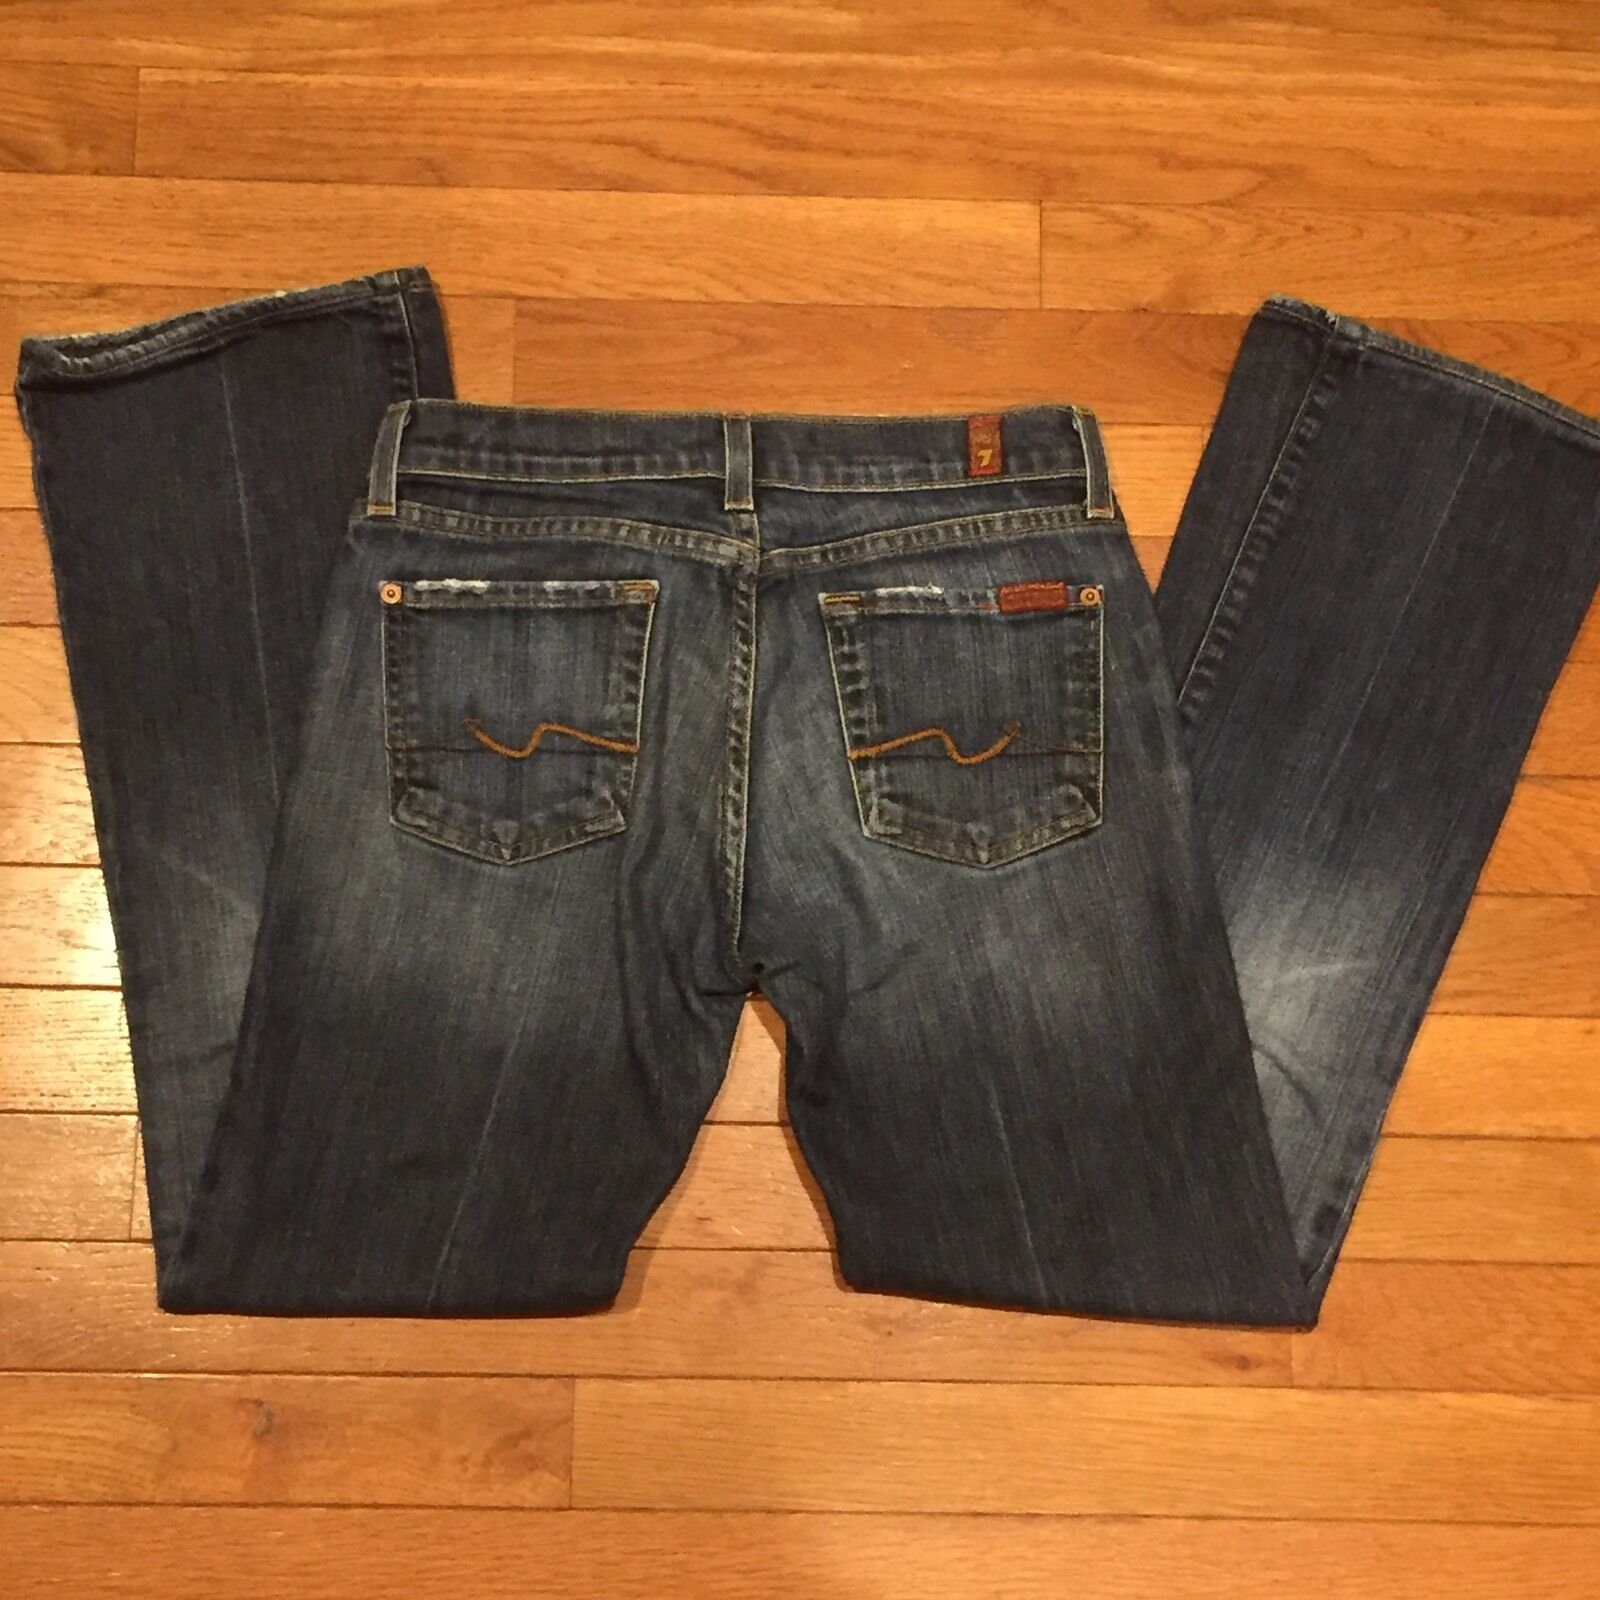 7 For All Mankind Bootcut Women's Jeans, Excellent Condition, Size 26x28